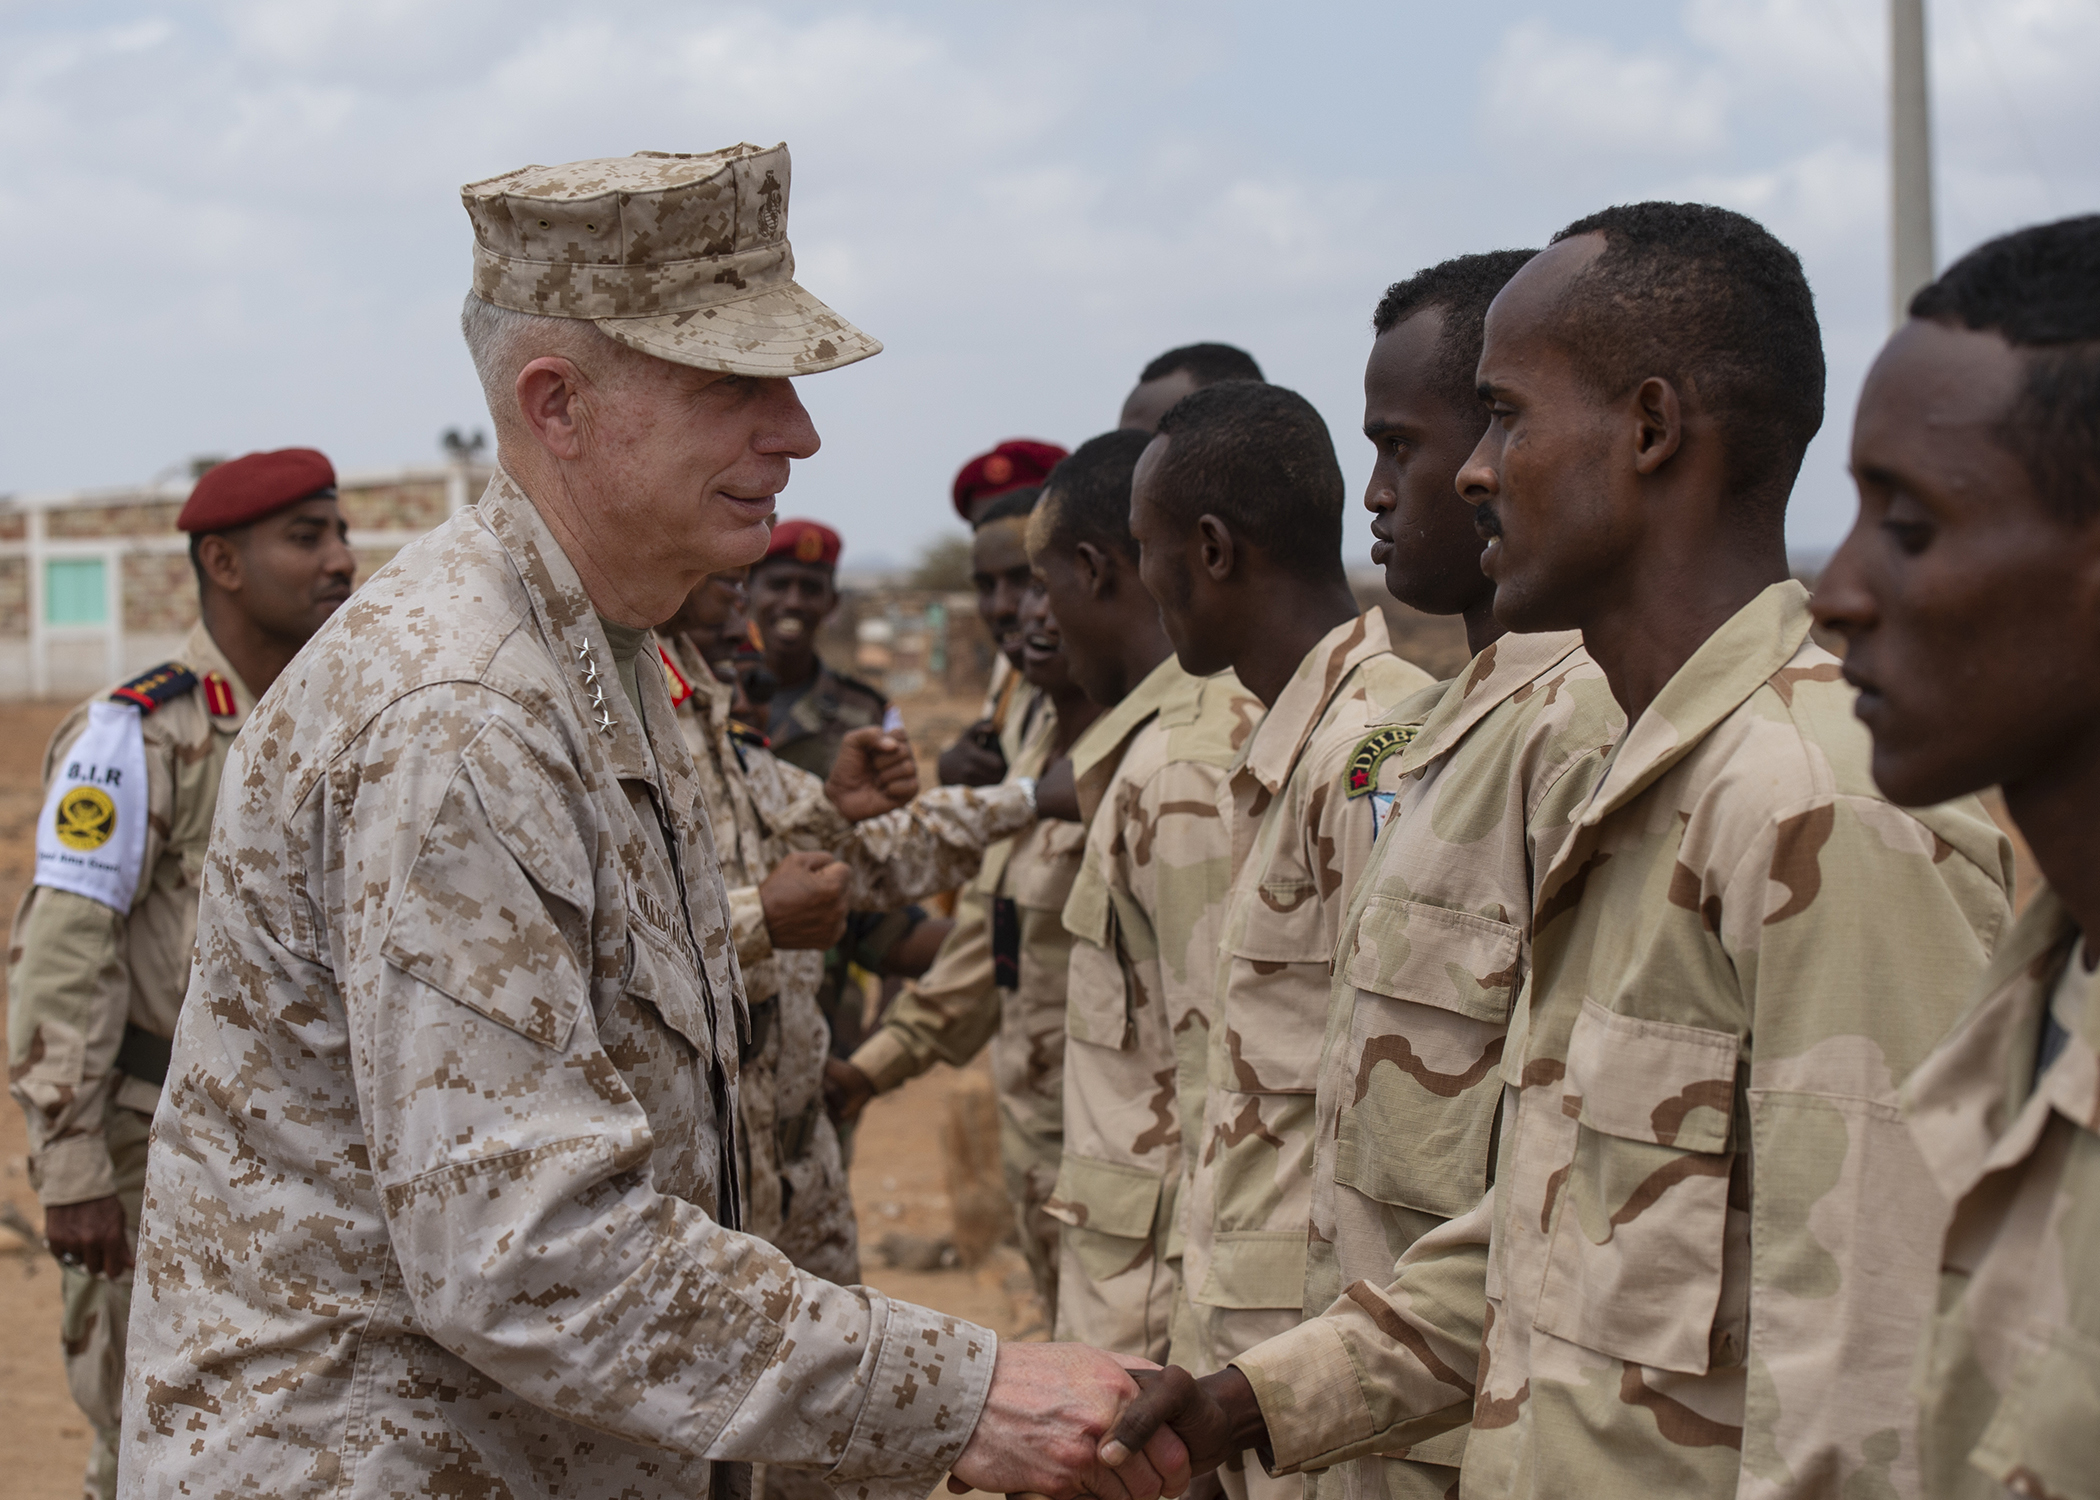 U.S. Marine Corps Gen. Thomas D. Waldhauser, commander of U.S. Africa Command, thanks soldiers from the Djiboutian army's elite military force, the Rapid Intervention Battalion, after demonstrating hand-to-hand combat during a visit with senior Djiboutian officials, including Chief of General Staff of the Djibouti Armed Forces Gen. Zakaria Cheik Ibrahim, at a training base in Djibouti, March 21, 2019. Waldhauser visited in order to discuss the growth and development of Djiboutian security forces. (U.S. Air Force photo by Tech. Sgt. Shawn Nickel)